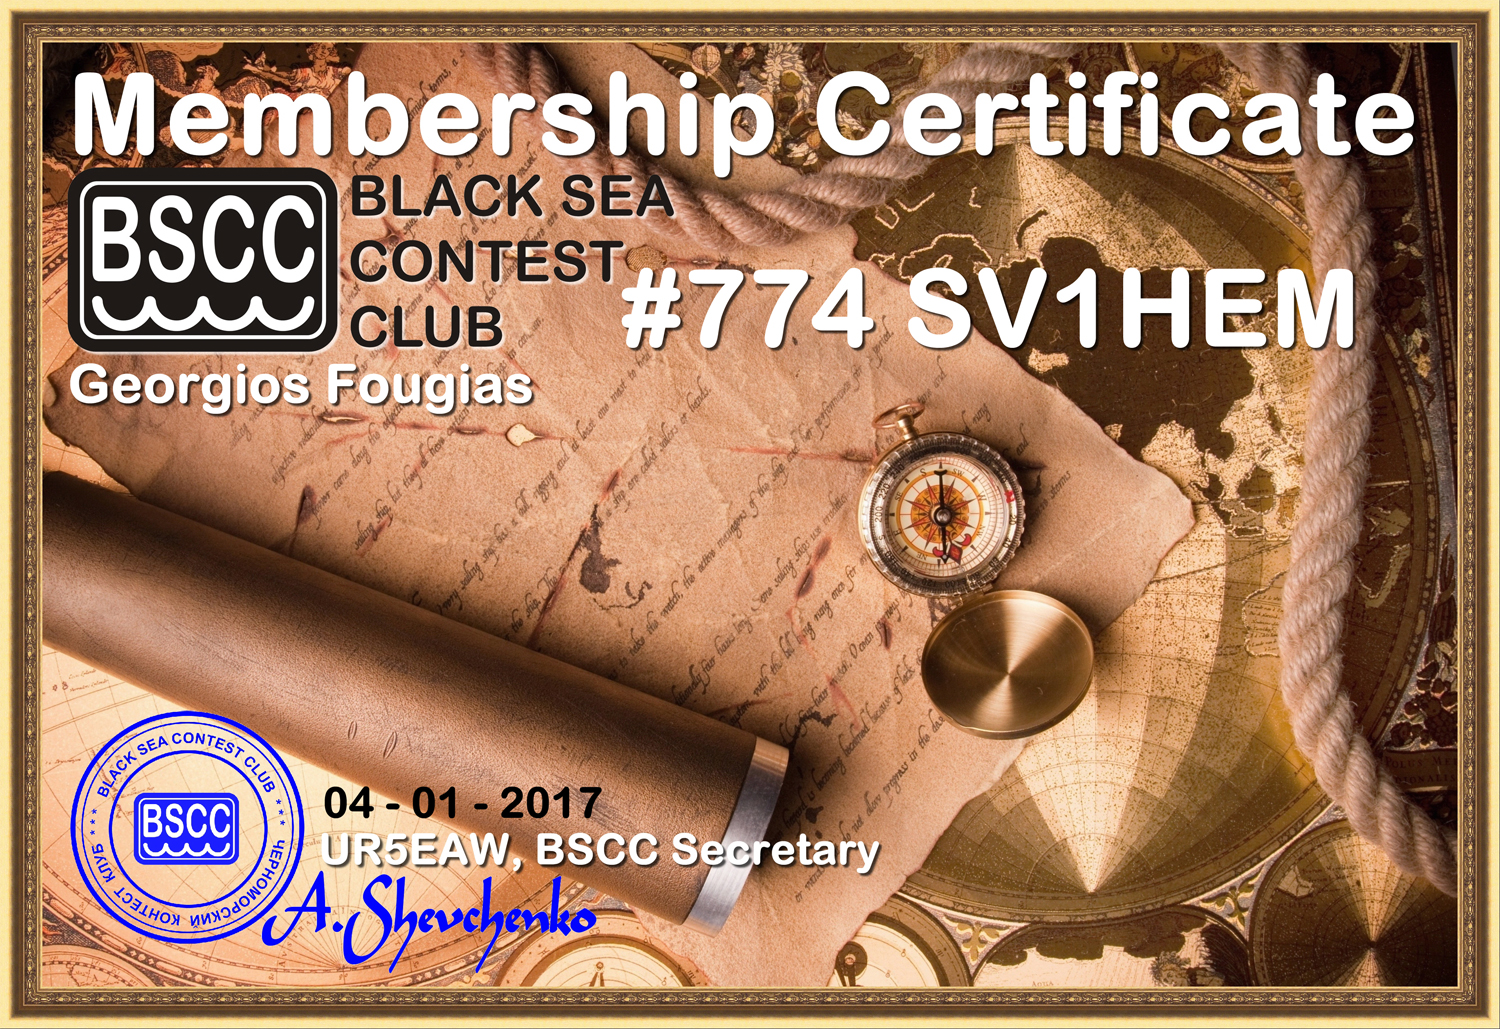 BSCC: 52 country-member of the Black Sea Contest Club